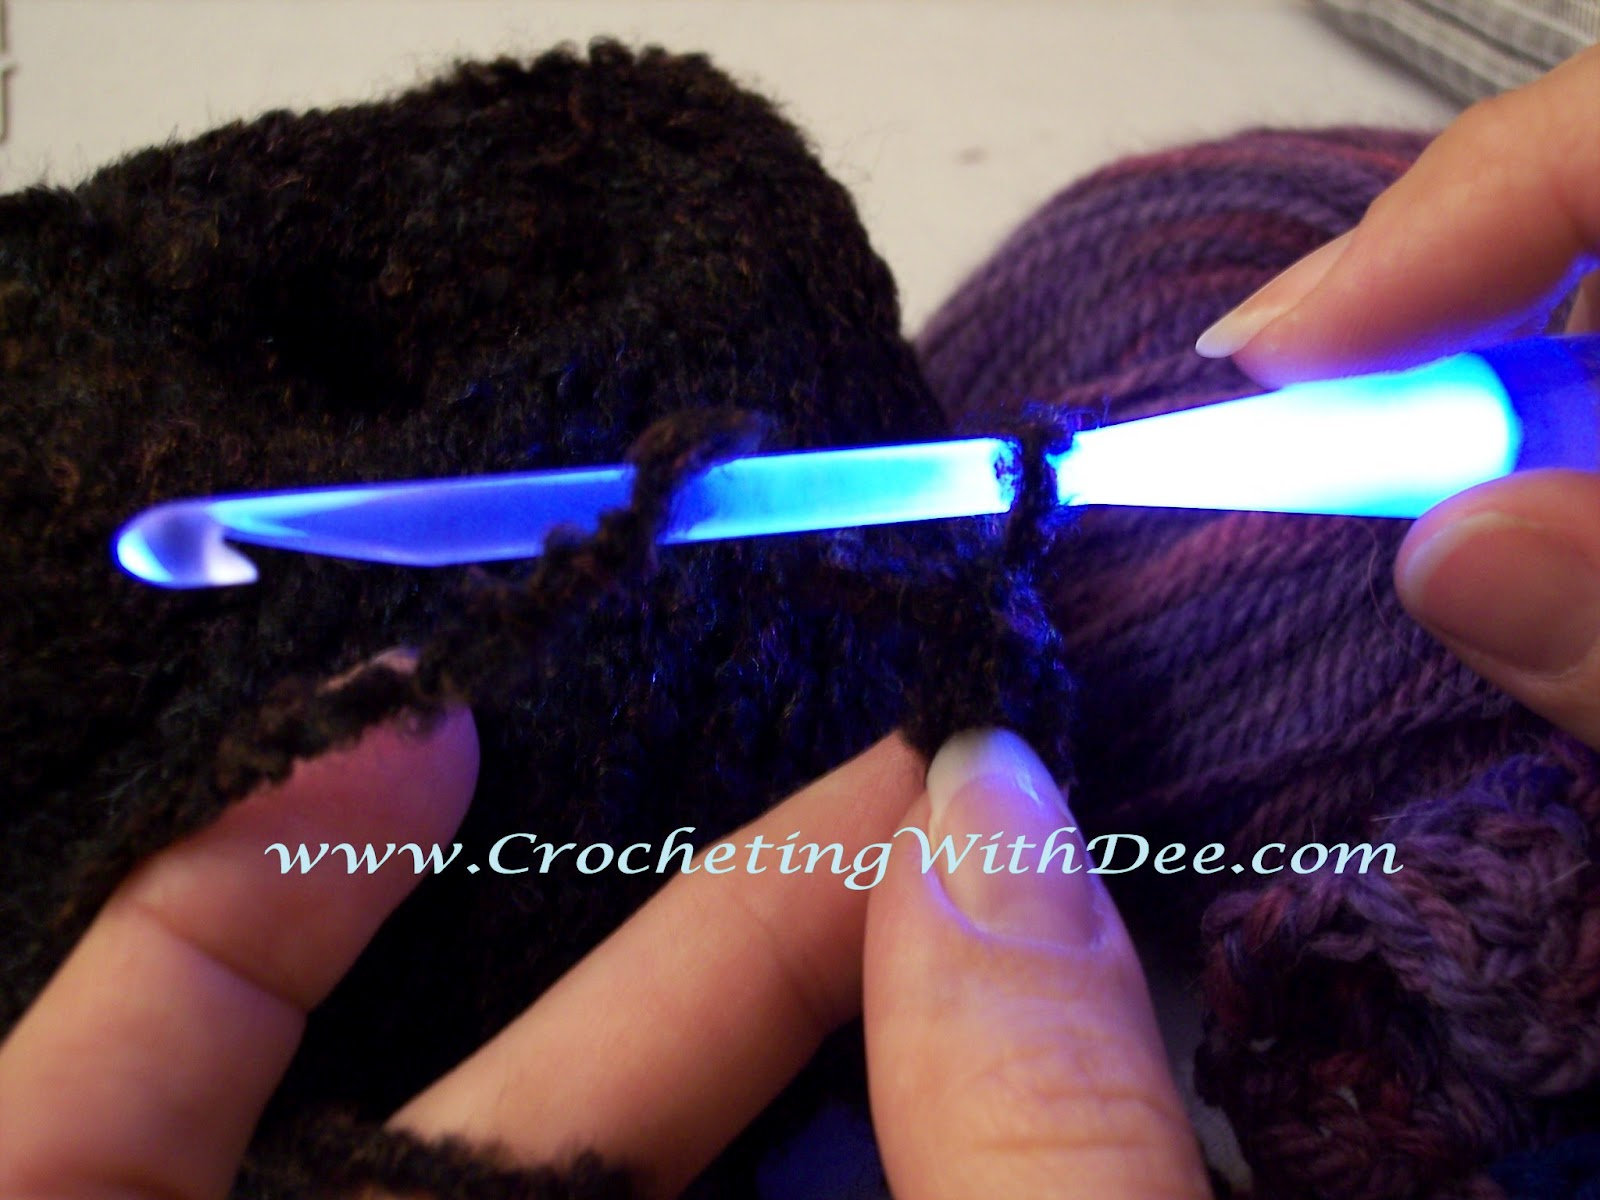 Crochet Light Up Hooks : Dees Hooks & Stitches: NeedleLite Crochet Hook